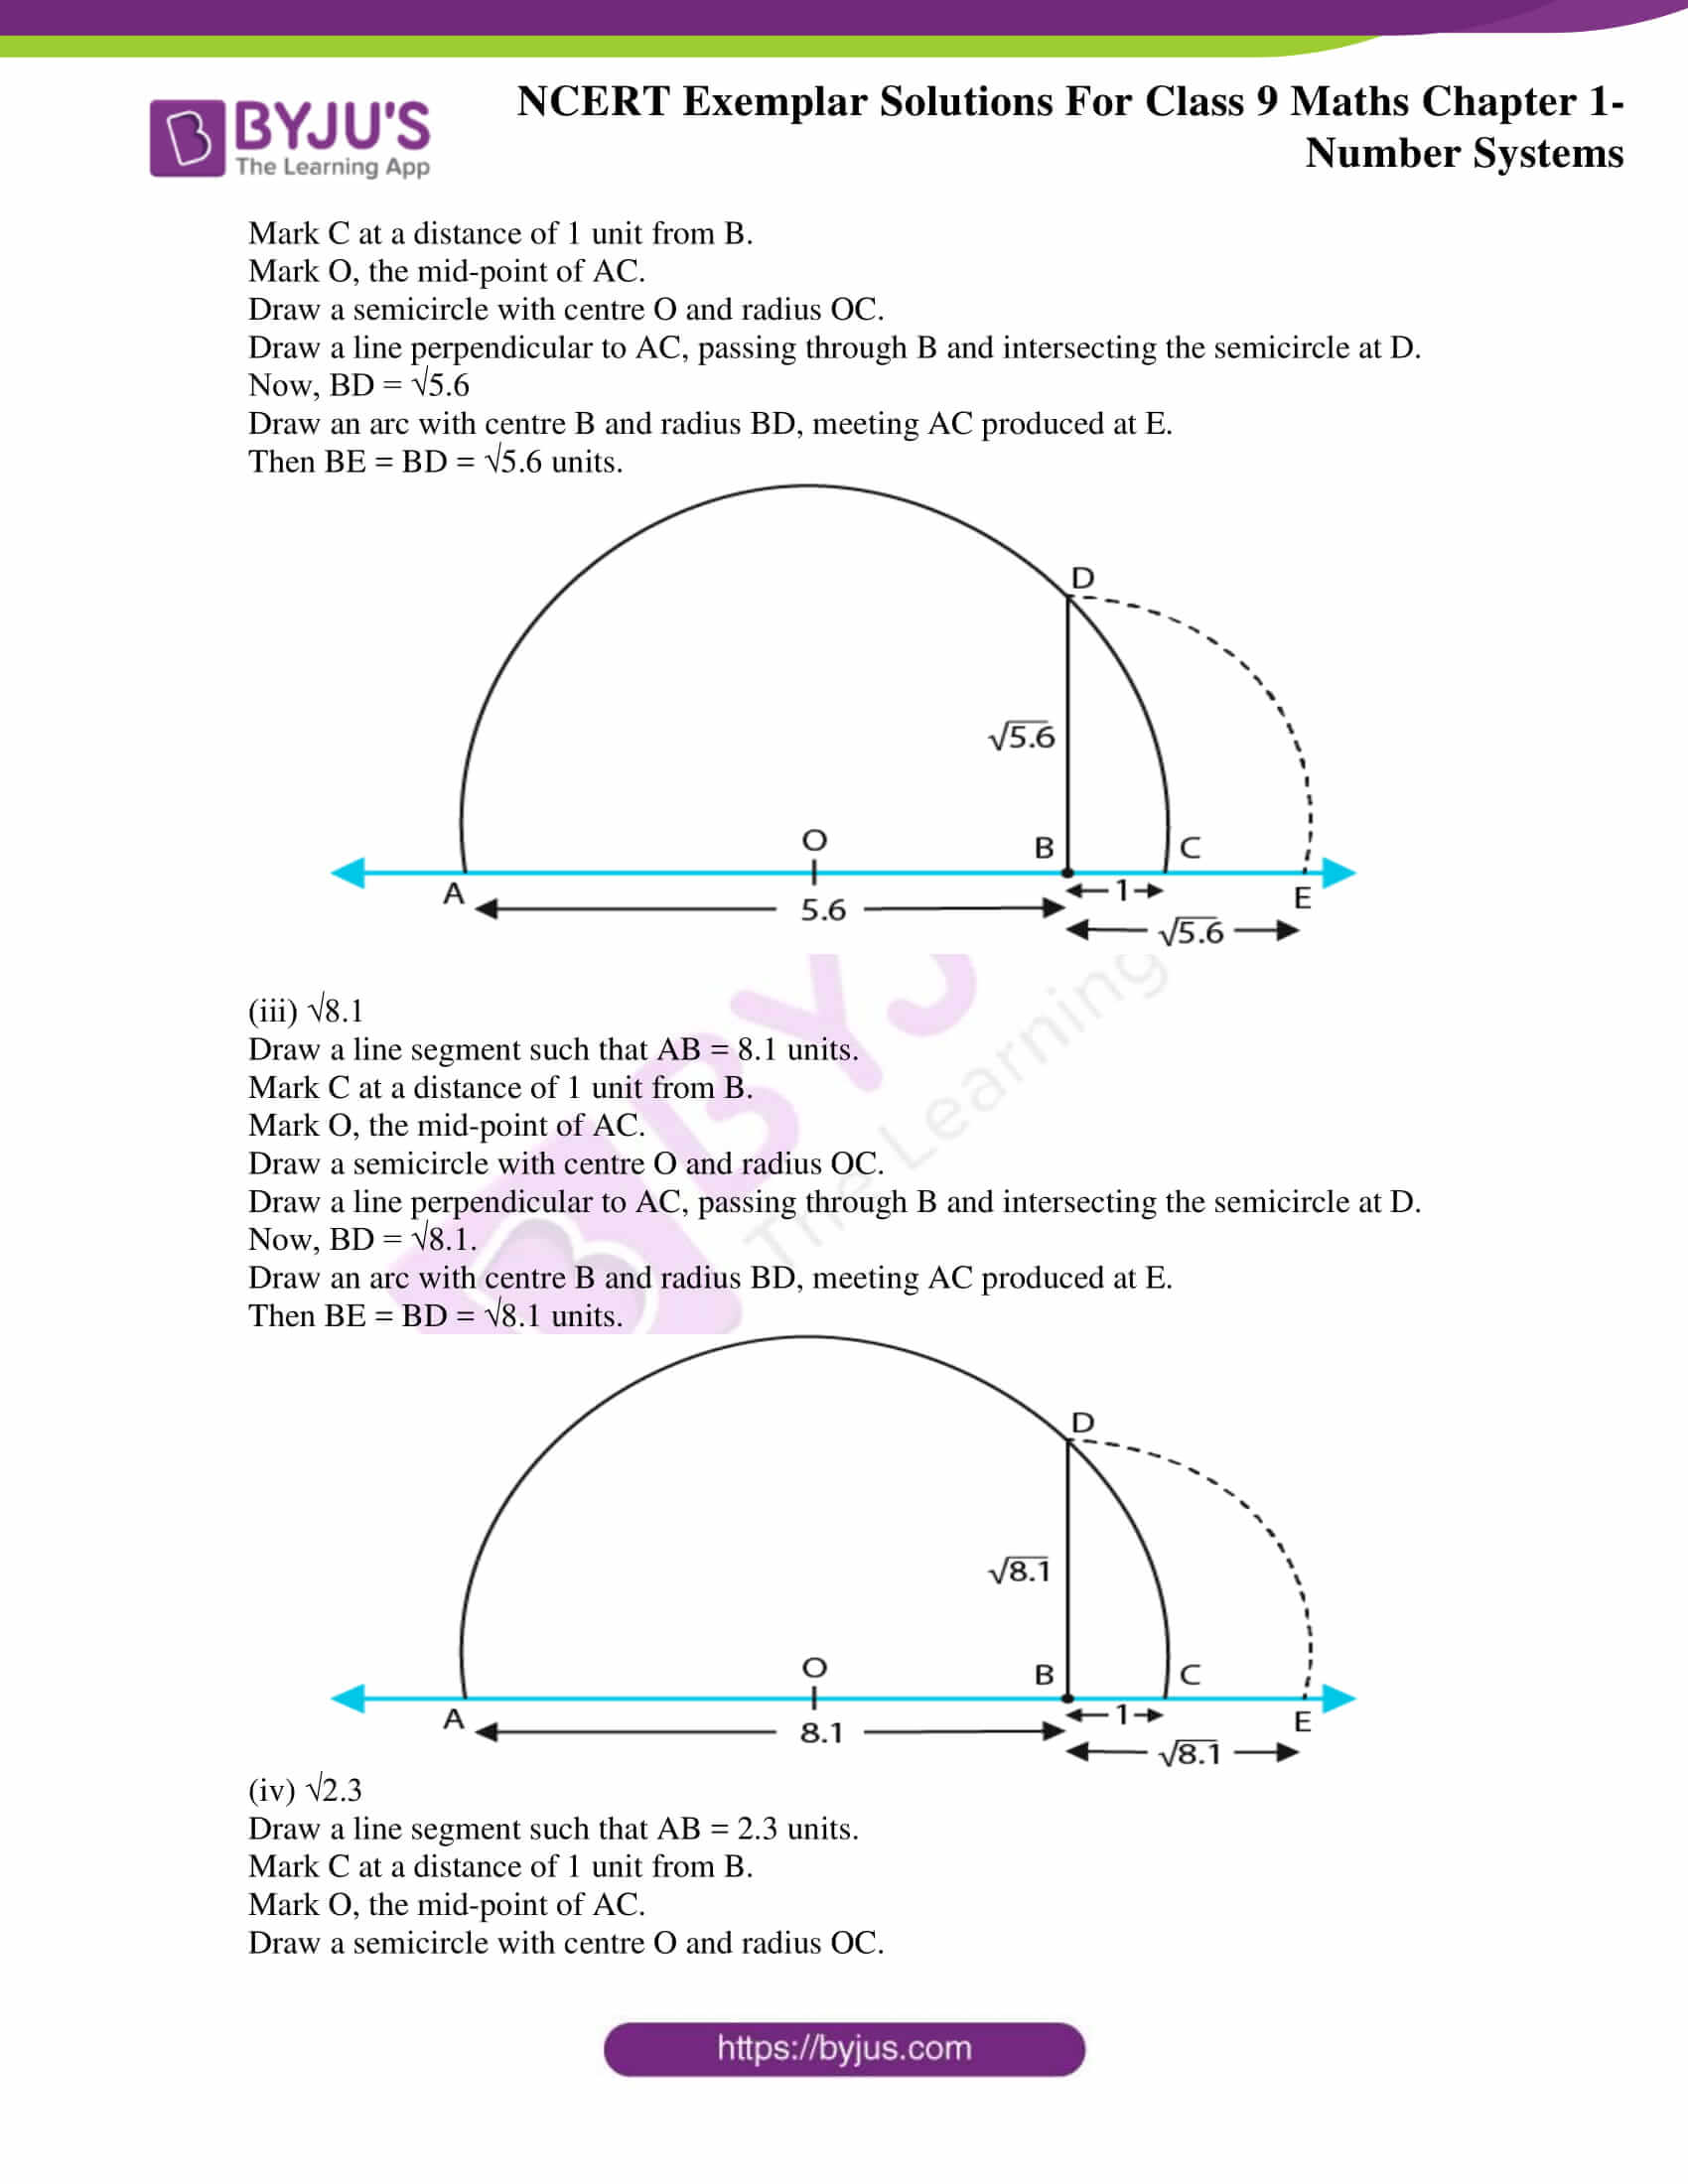 NCERT Exemplar Solutions for Class 9 Maths Chapter 1 12